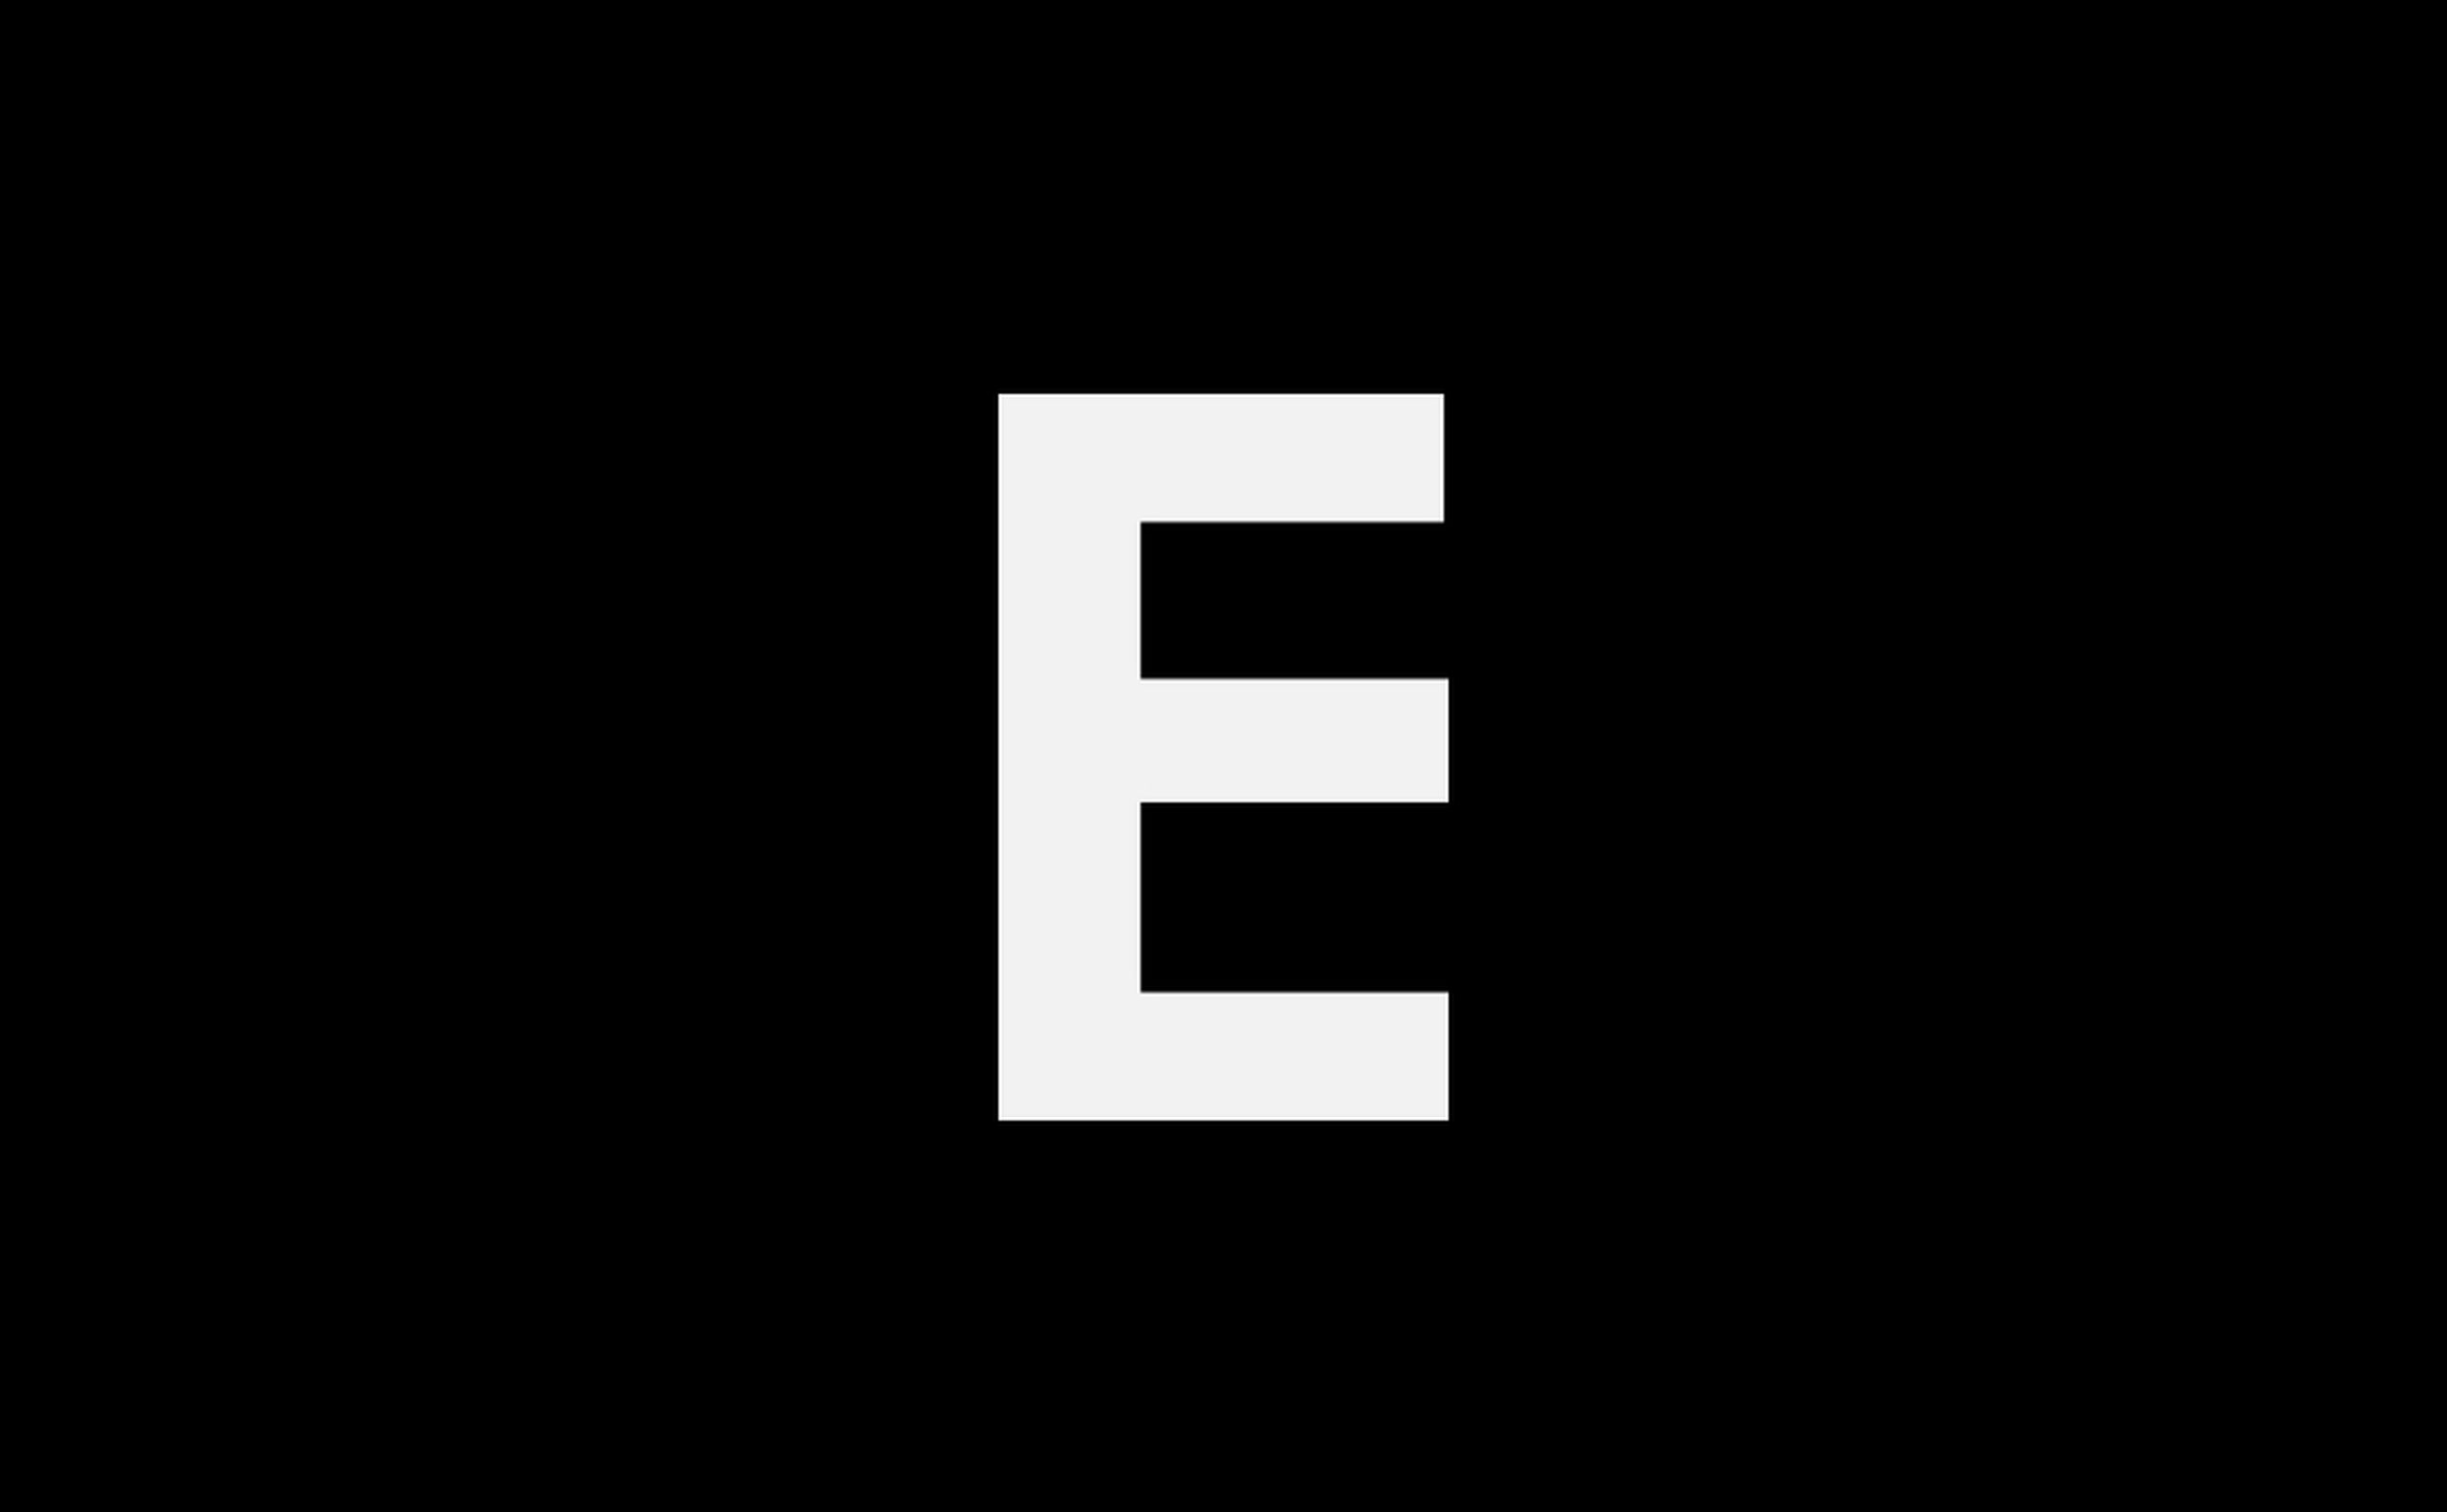 animal, animal themes, animal wildlife, insect, invertebrate, close-up, one animal, animals in the wild, beauty in nature, no people, butterfly - insect, animal wing, flower, focus on foreground, orange color, nature, natural pattern, animal markings, flowering plant, animal body part, orange background, butterfly